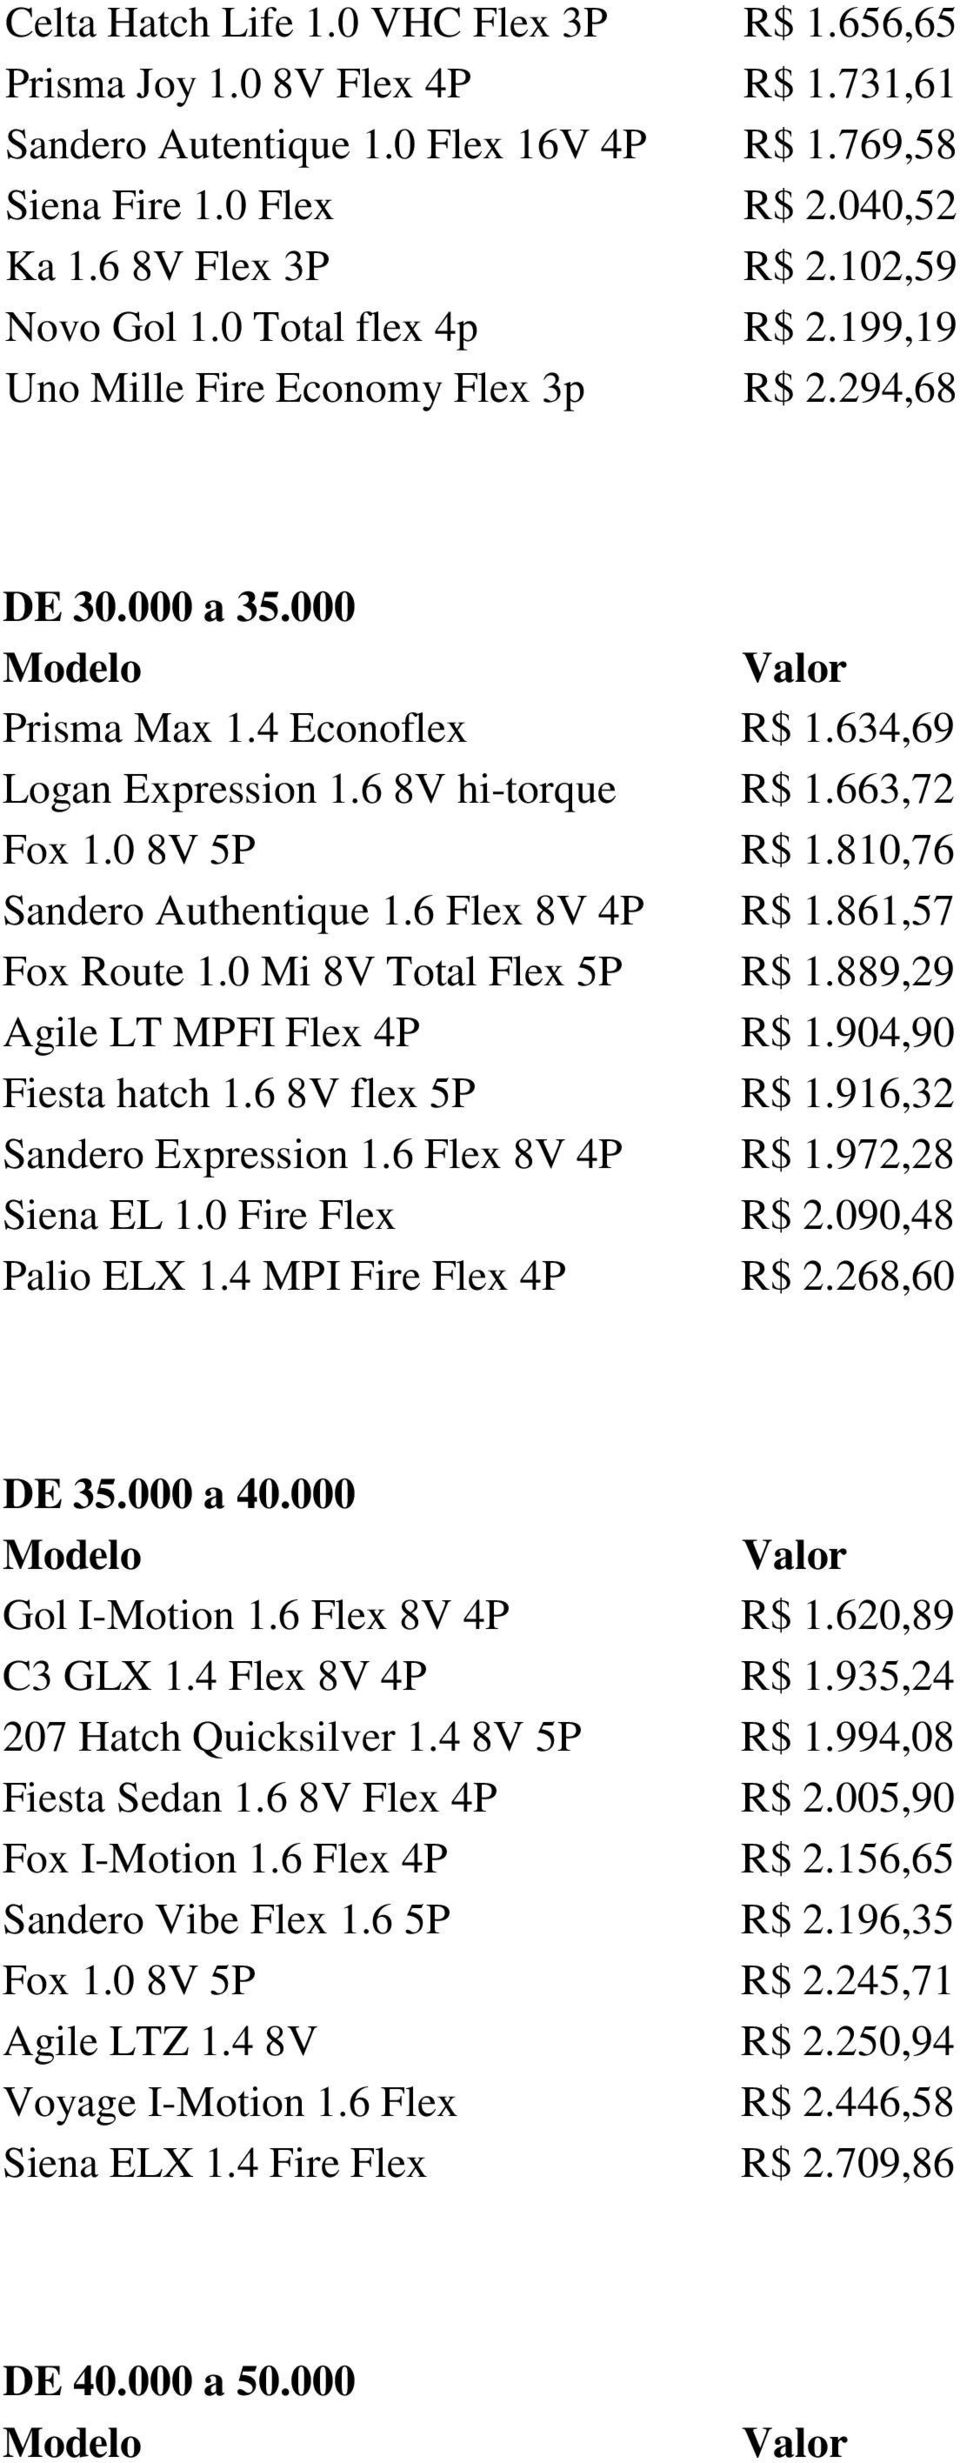 0 8V 5P R$ 1.810,76 Sandero Authentique 1.6 Flex 8V 4P R$ 1.861,57 Fox Route 1.0 Mi 8V Total Flex 5P R$ 1.889,29 Agile LT MPFI Flex 4P R$ 1.904,90 Fiesta hatch 1.6 8V flex 5P R$ 1.